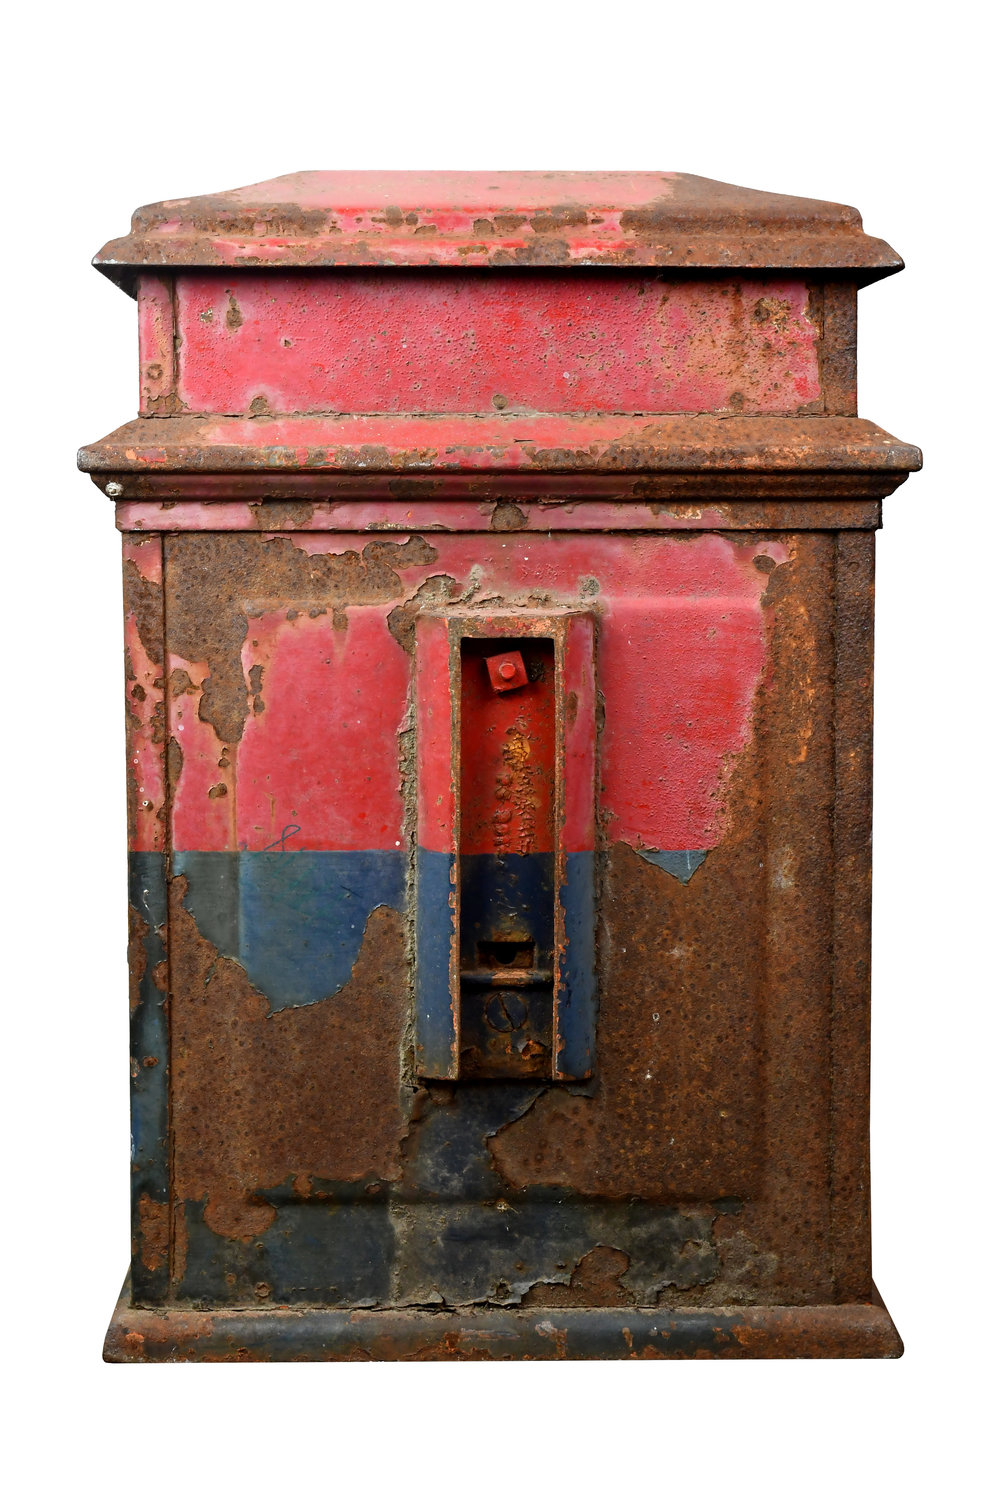 47478-iron-mailbox-back-full-view.jpg